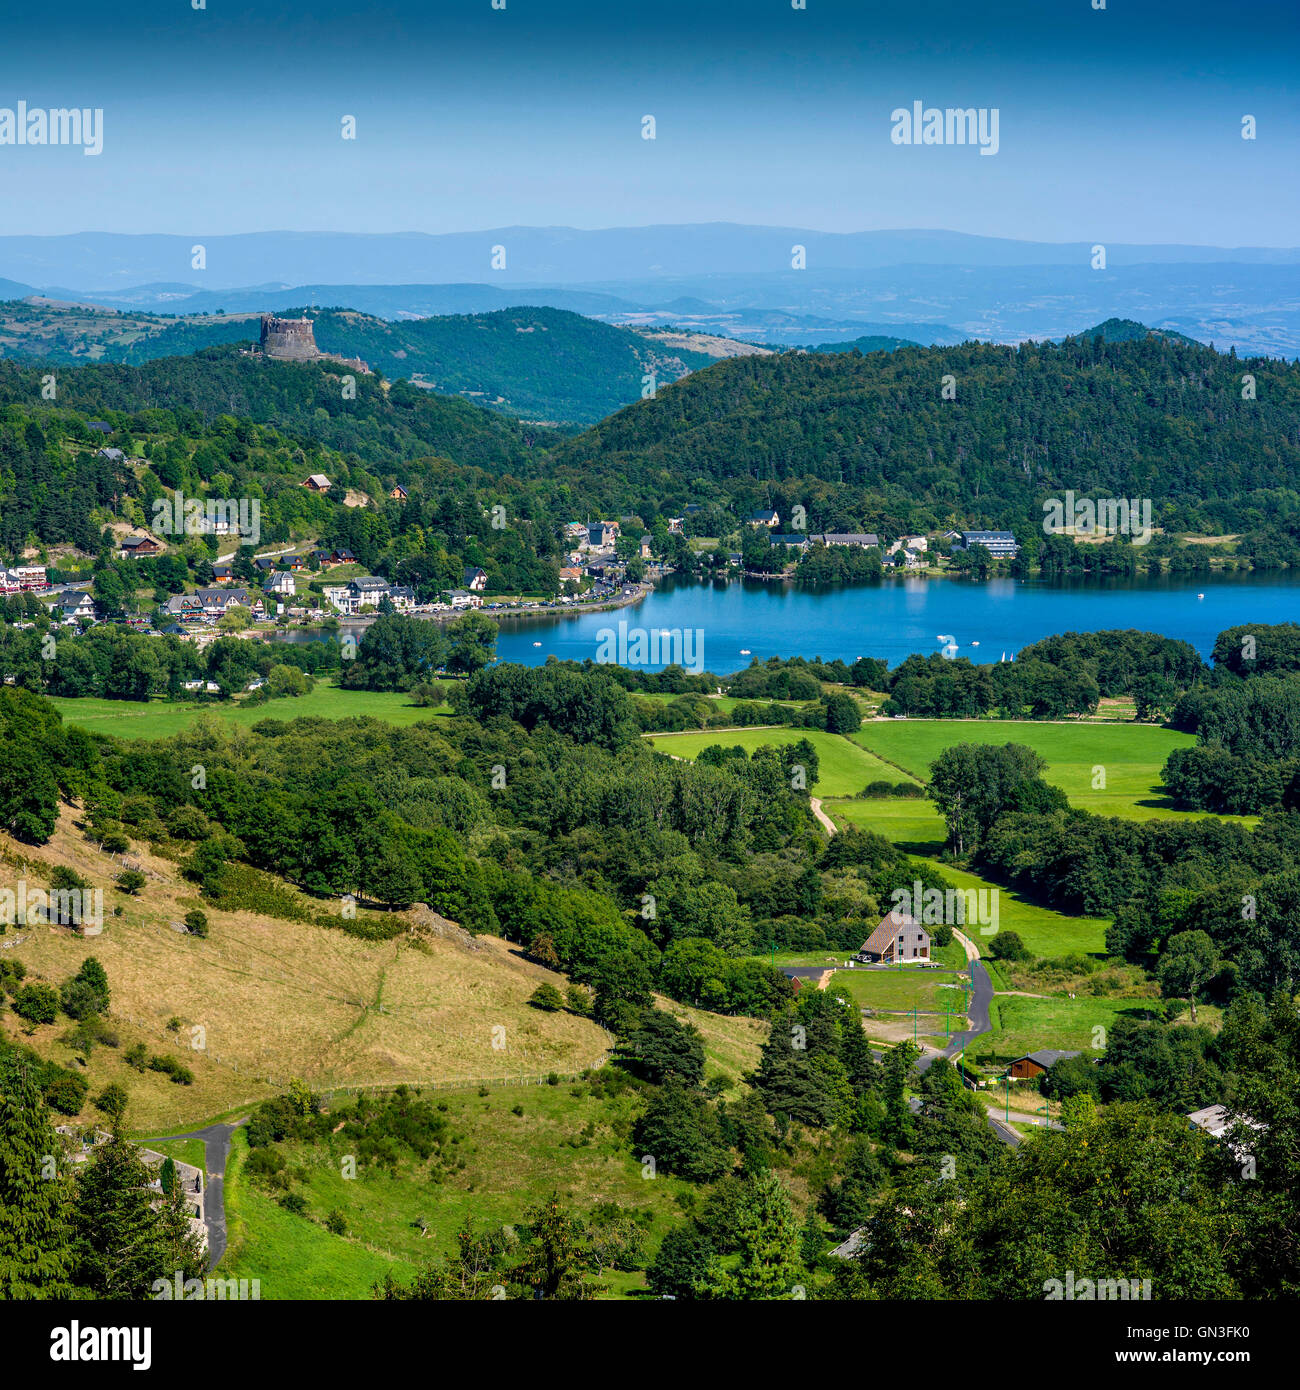 Lake Chambon and the castle of Murol in Puy de Dome, Auvergne, France - Stock Image